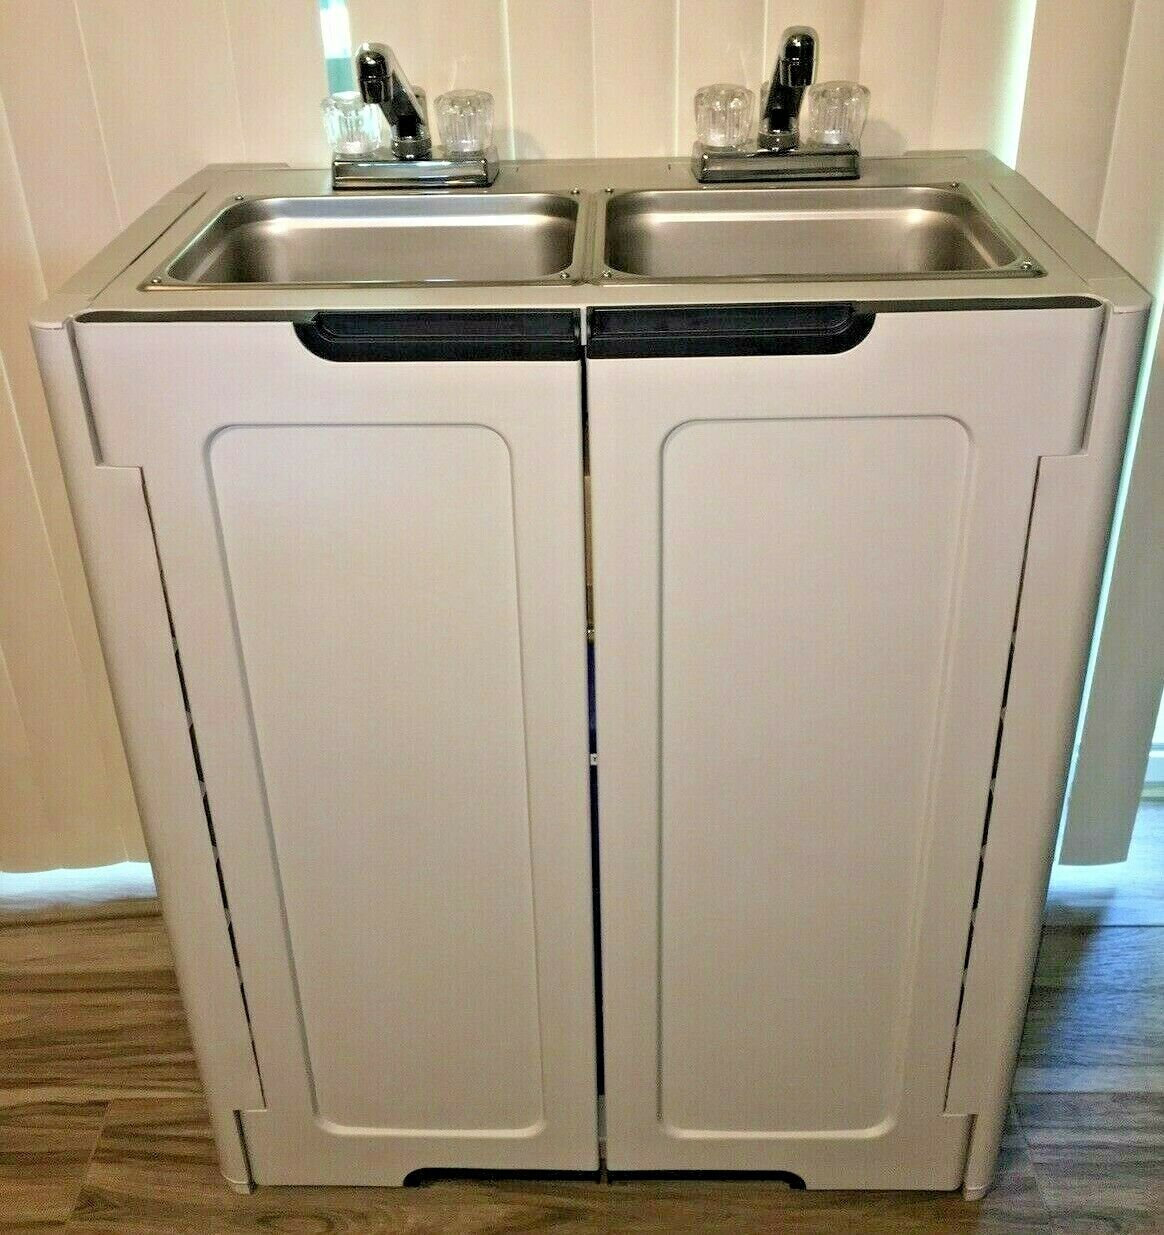 2 compartment portable sink hand wash self contained hot cold water all sink you need